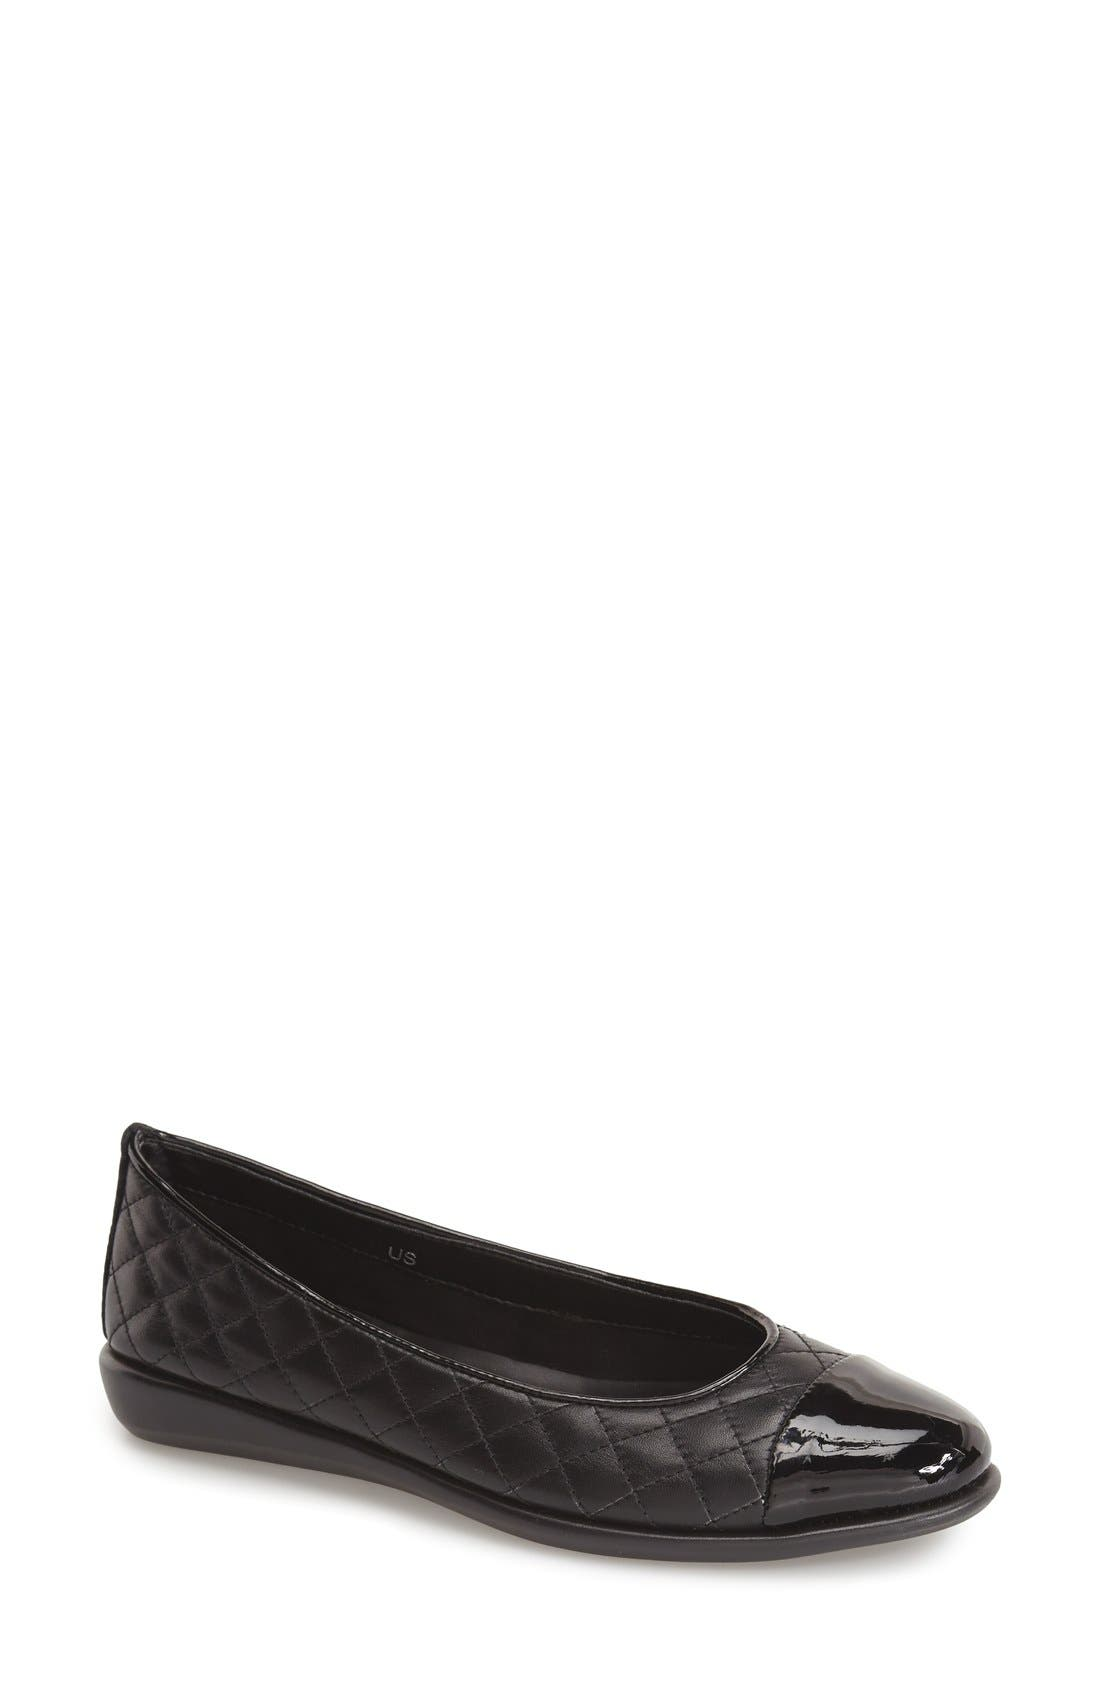 Alternate Image 1 Selected - The FLEXX 'Rise a Smile' Quilted Leather Flat (Women)